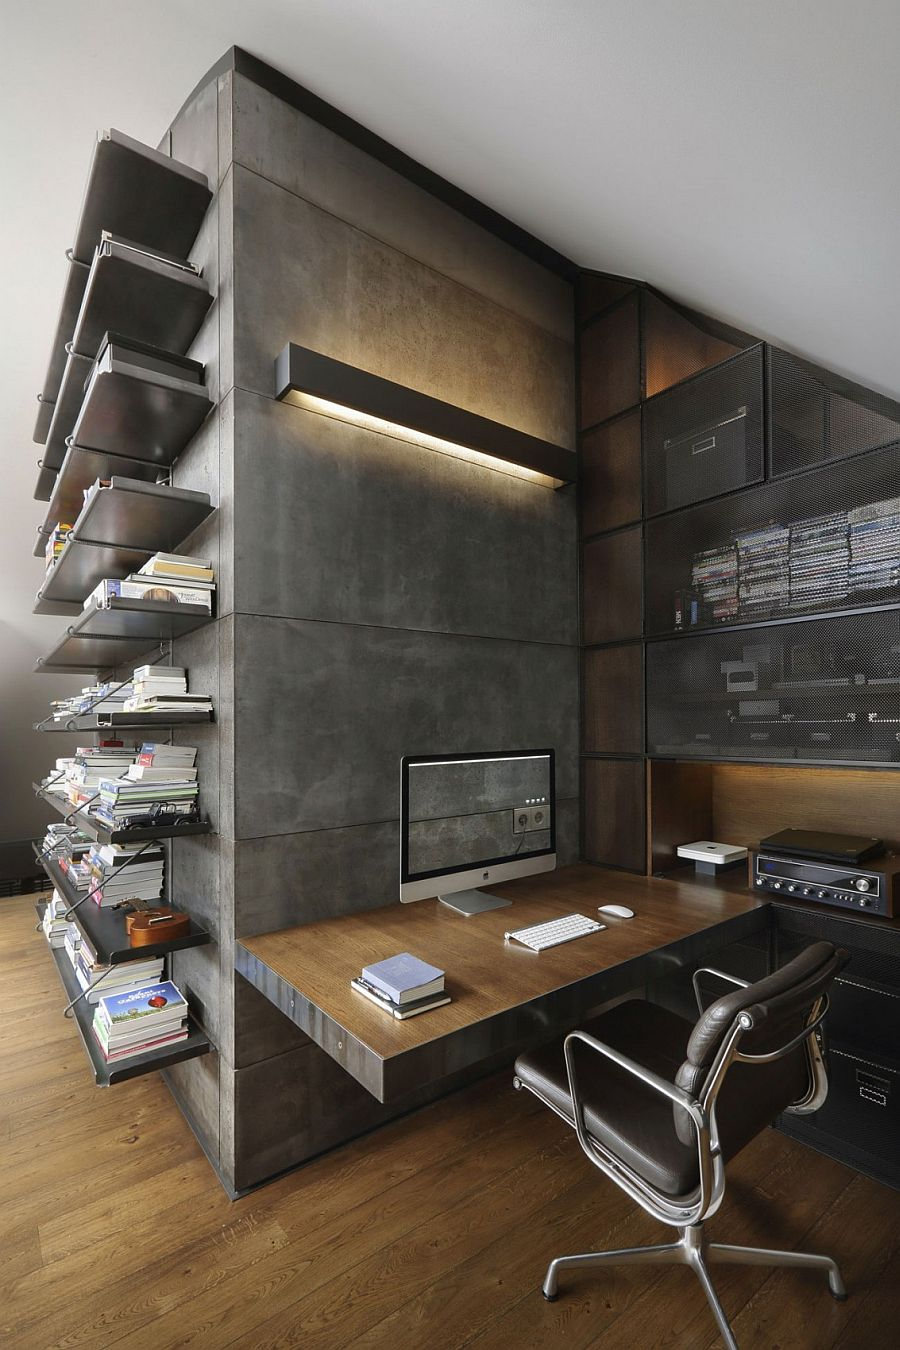 Organized home workspace with open shelves